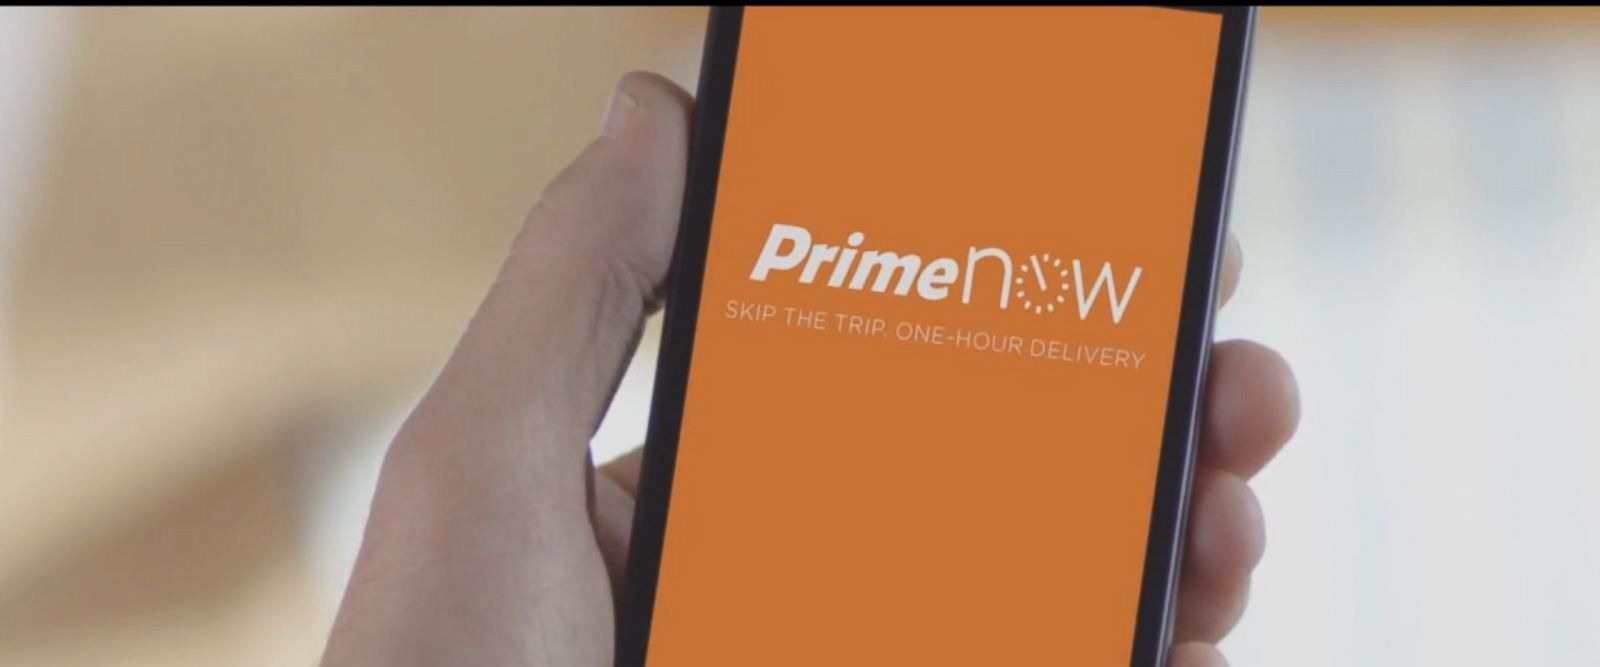 VIDEO: Concerns grow over Amazon's facial-recognition software